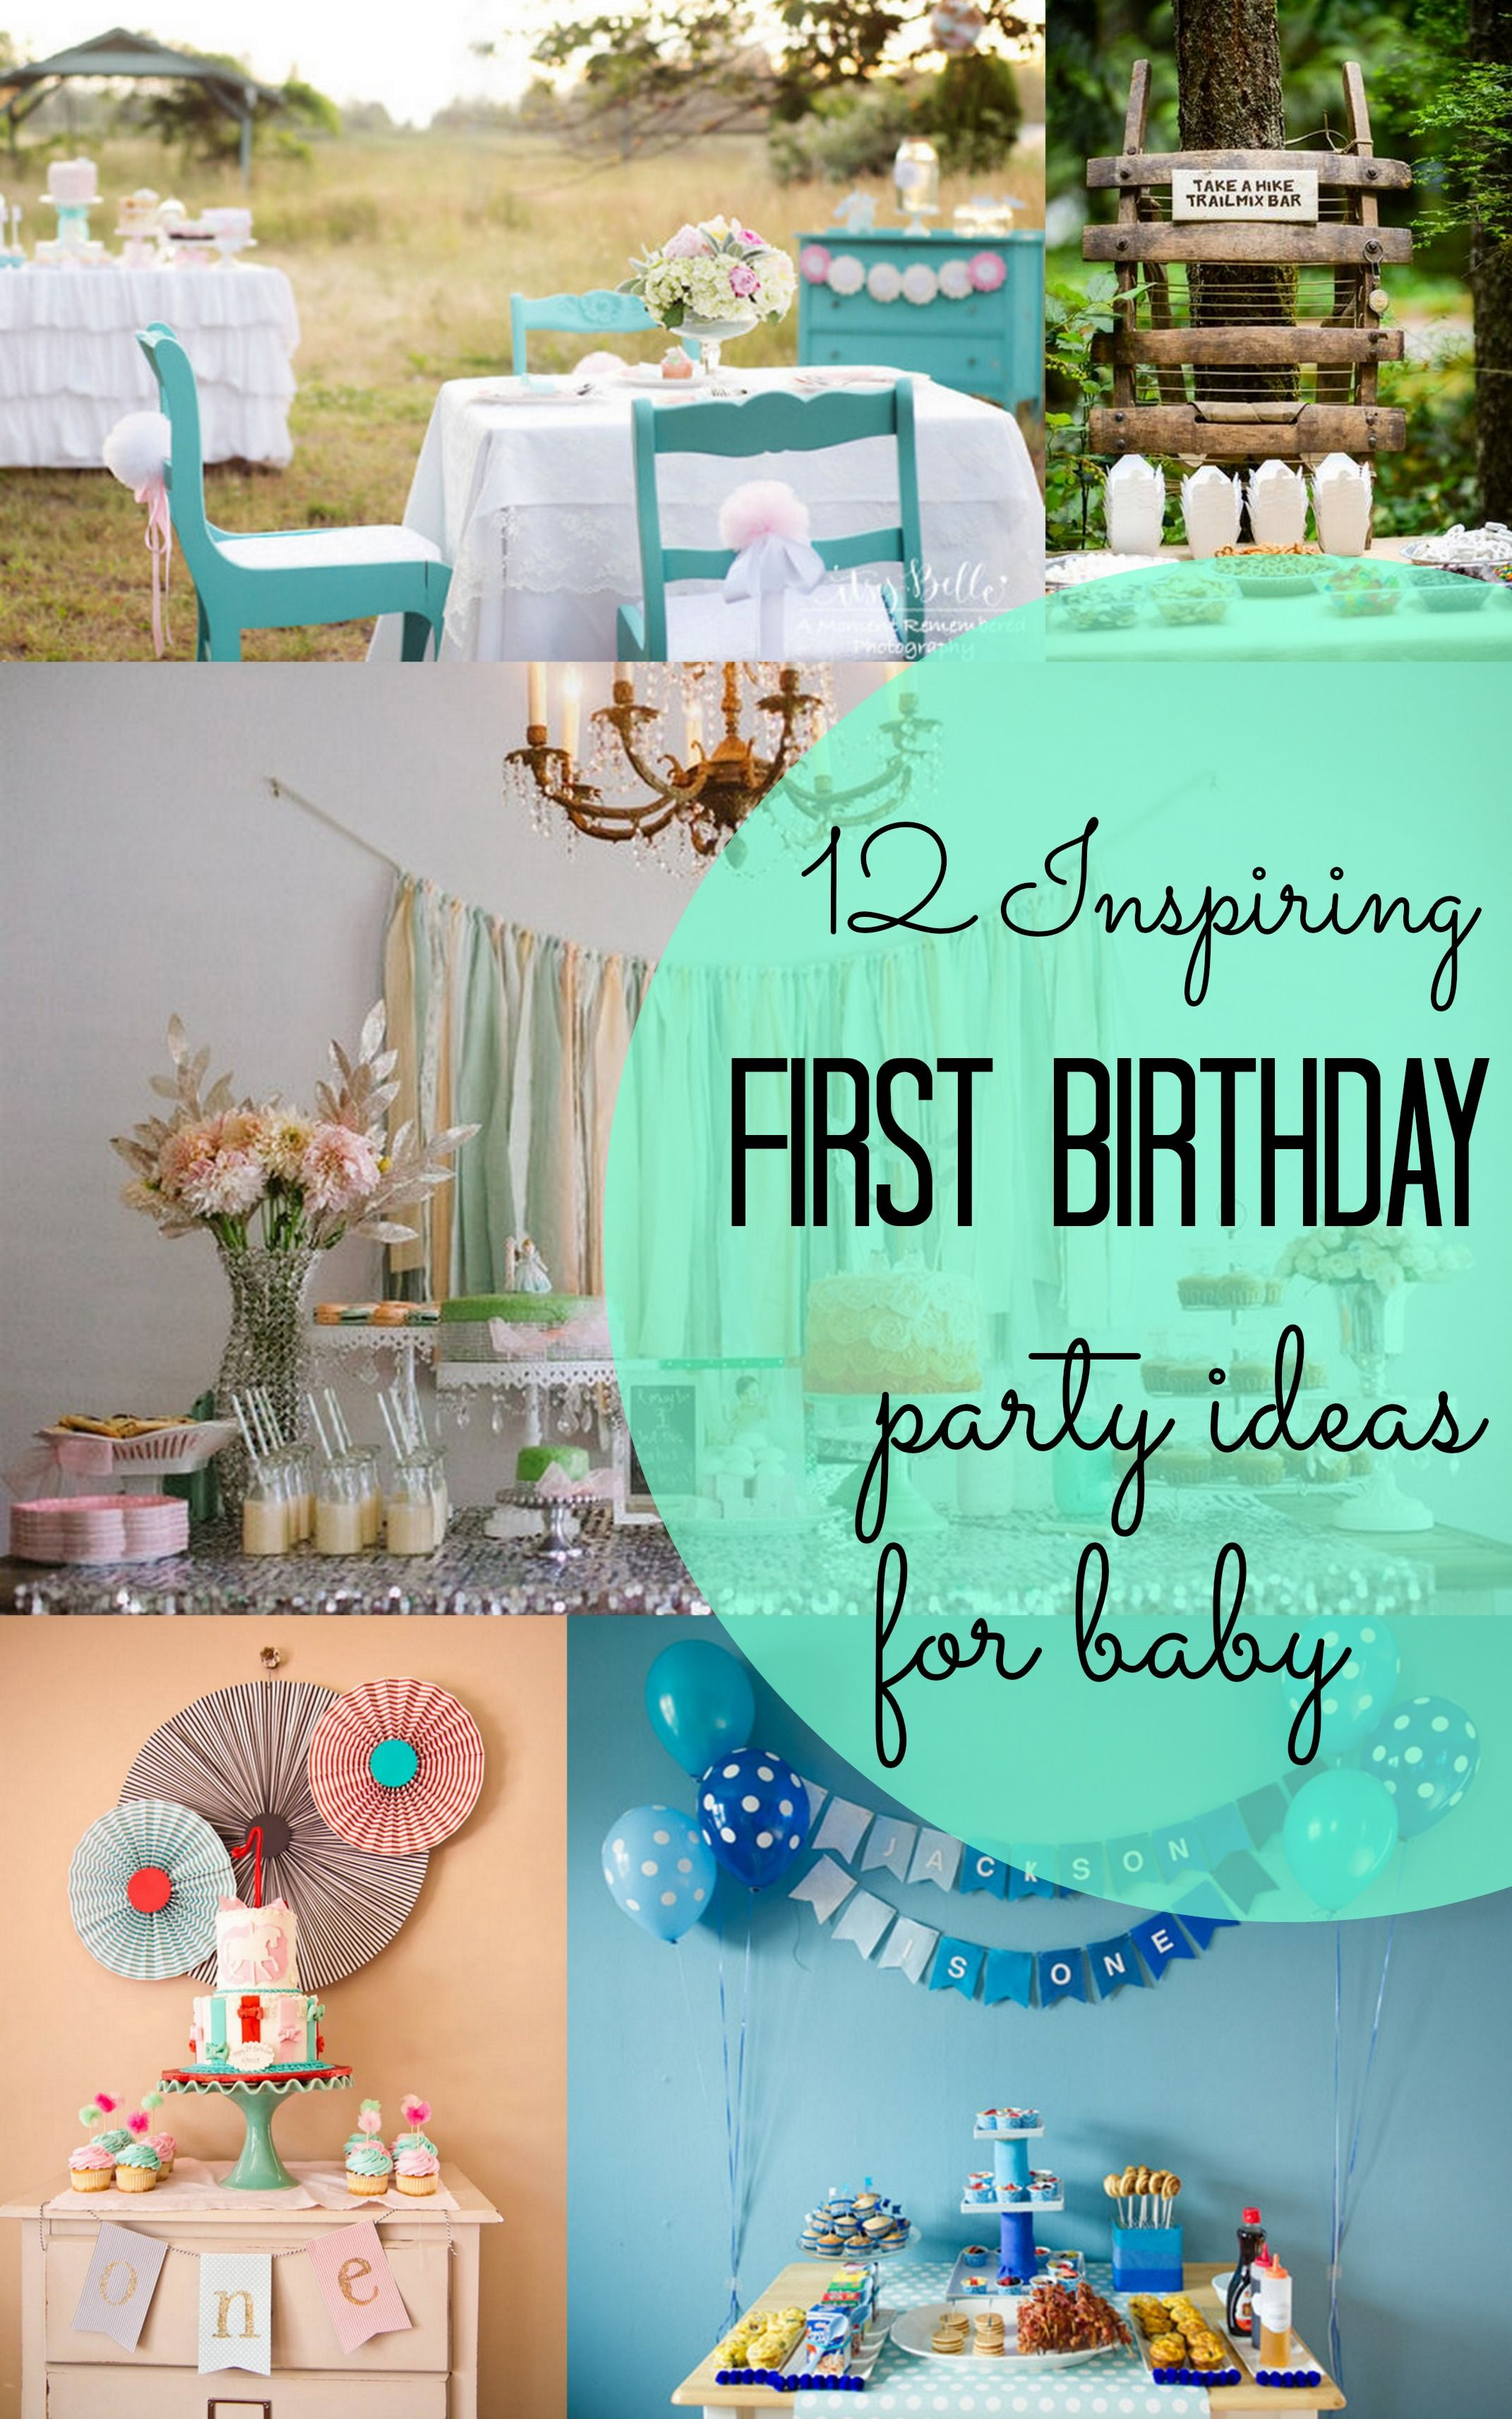 12 Inspiring First Birthday Party Ideas for Baby Birthday party